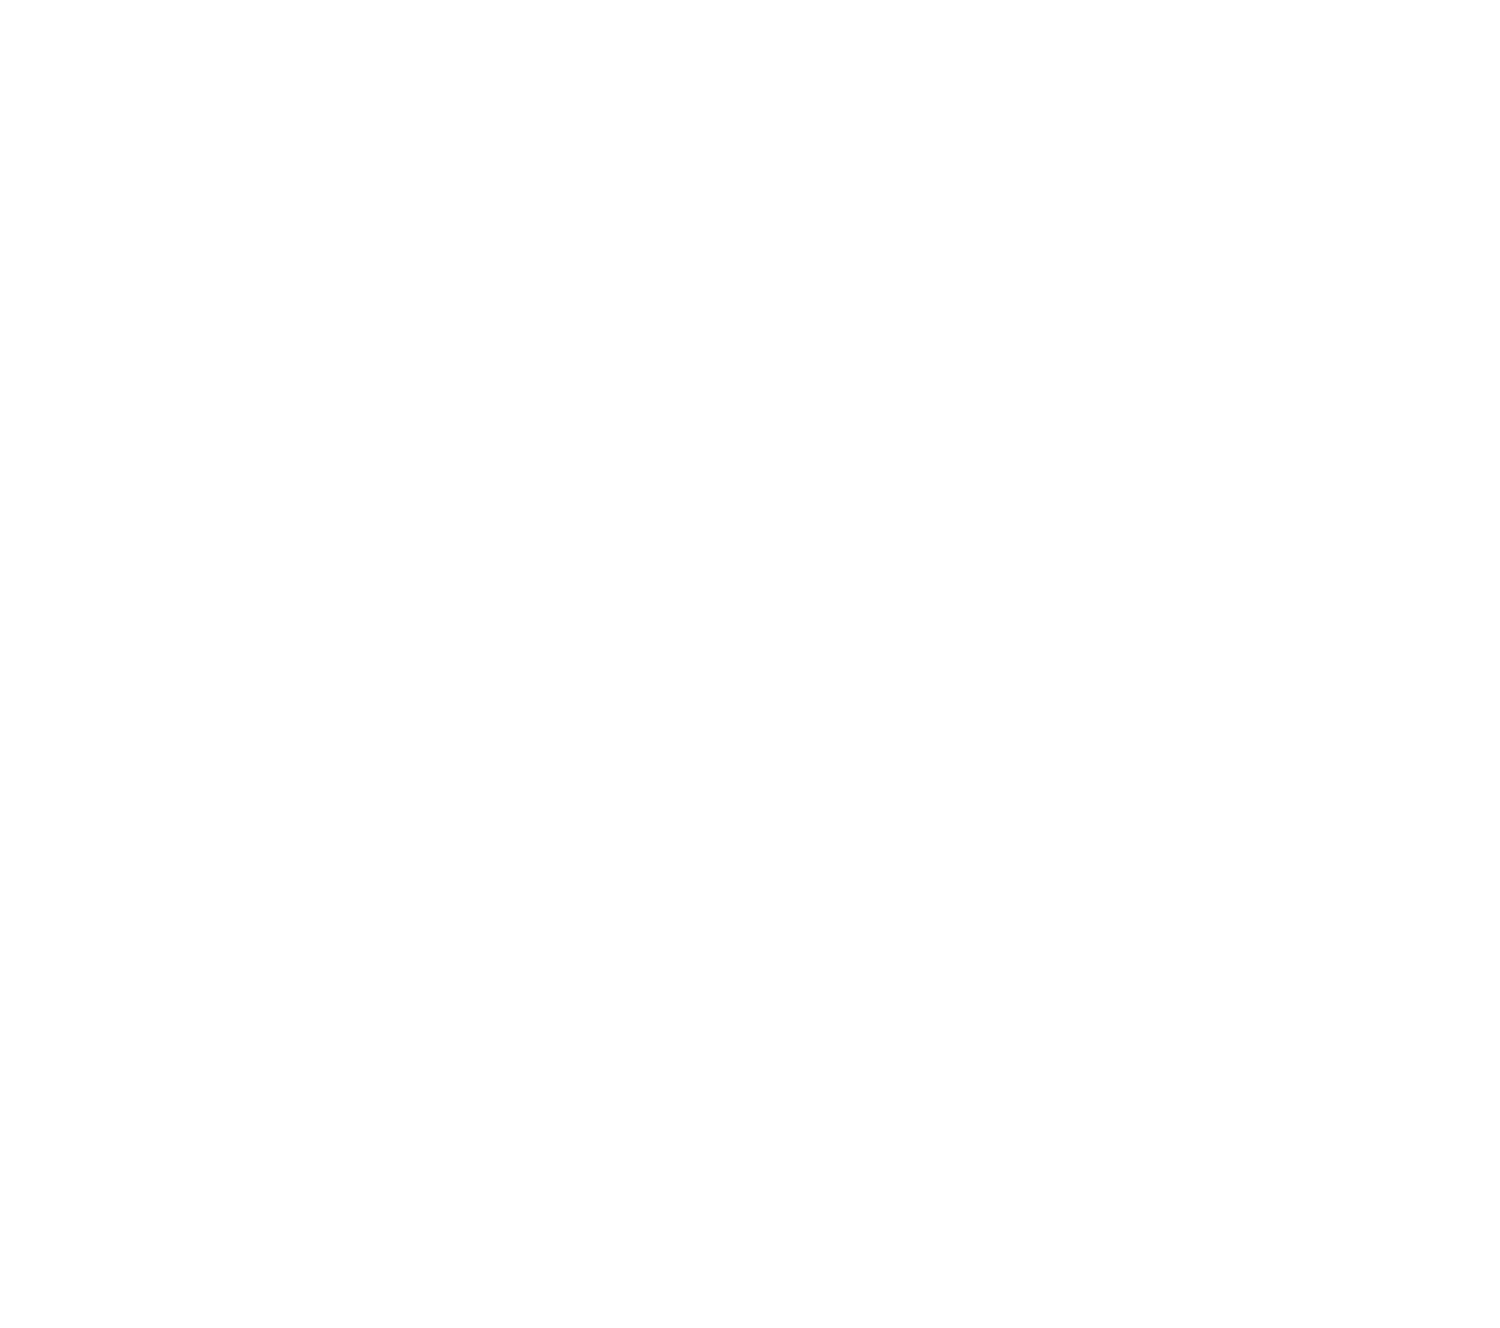 Camp Crusoe